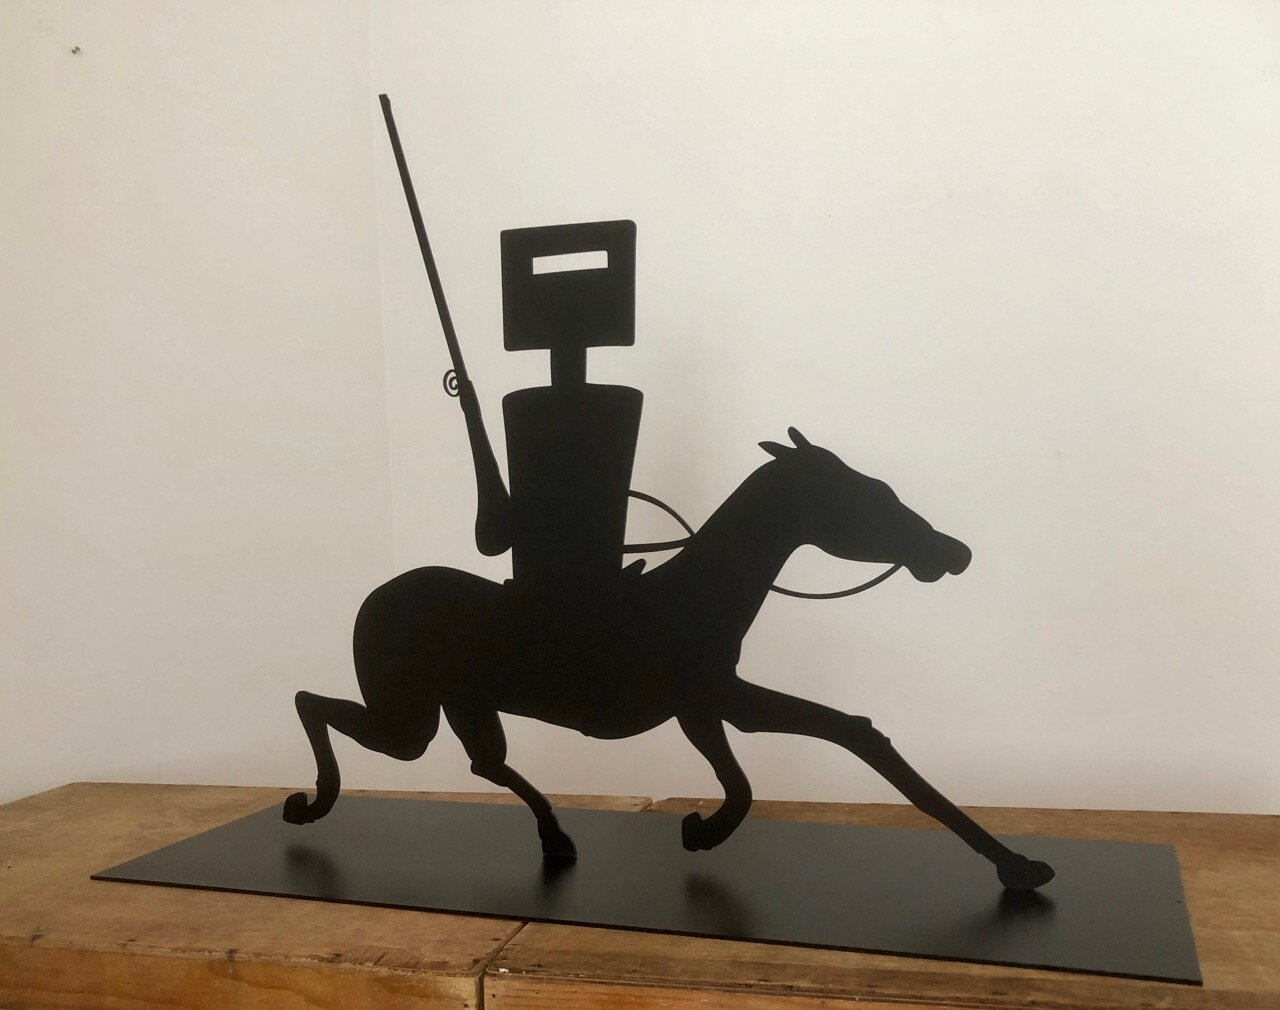 Wayne Youle  Riding, Riding, Riding , 2019 Powder coated silhouette steel 850 x 1110 x 395 mm Edition of 3  ______